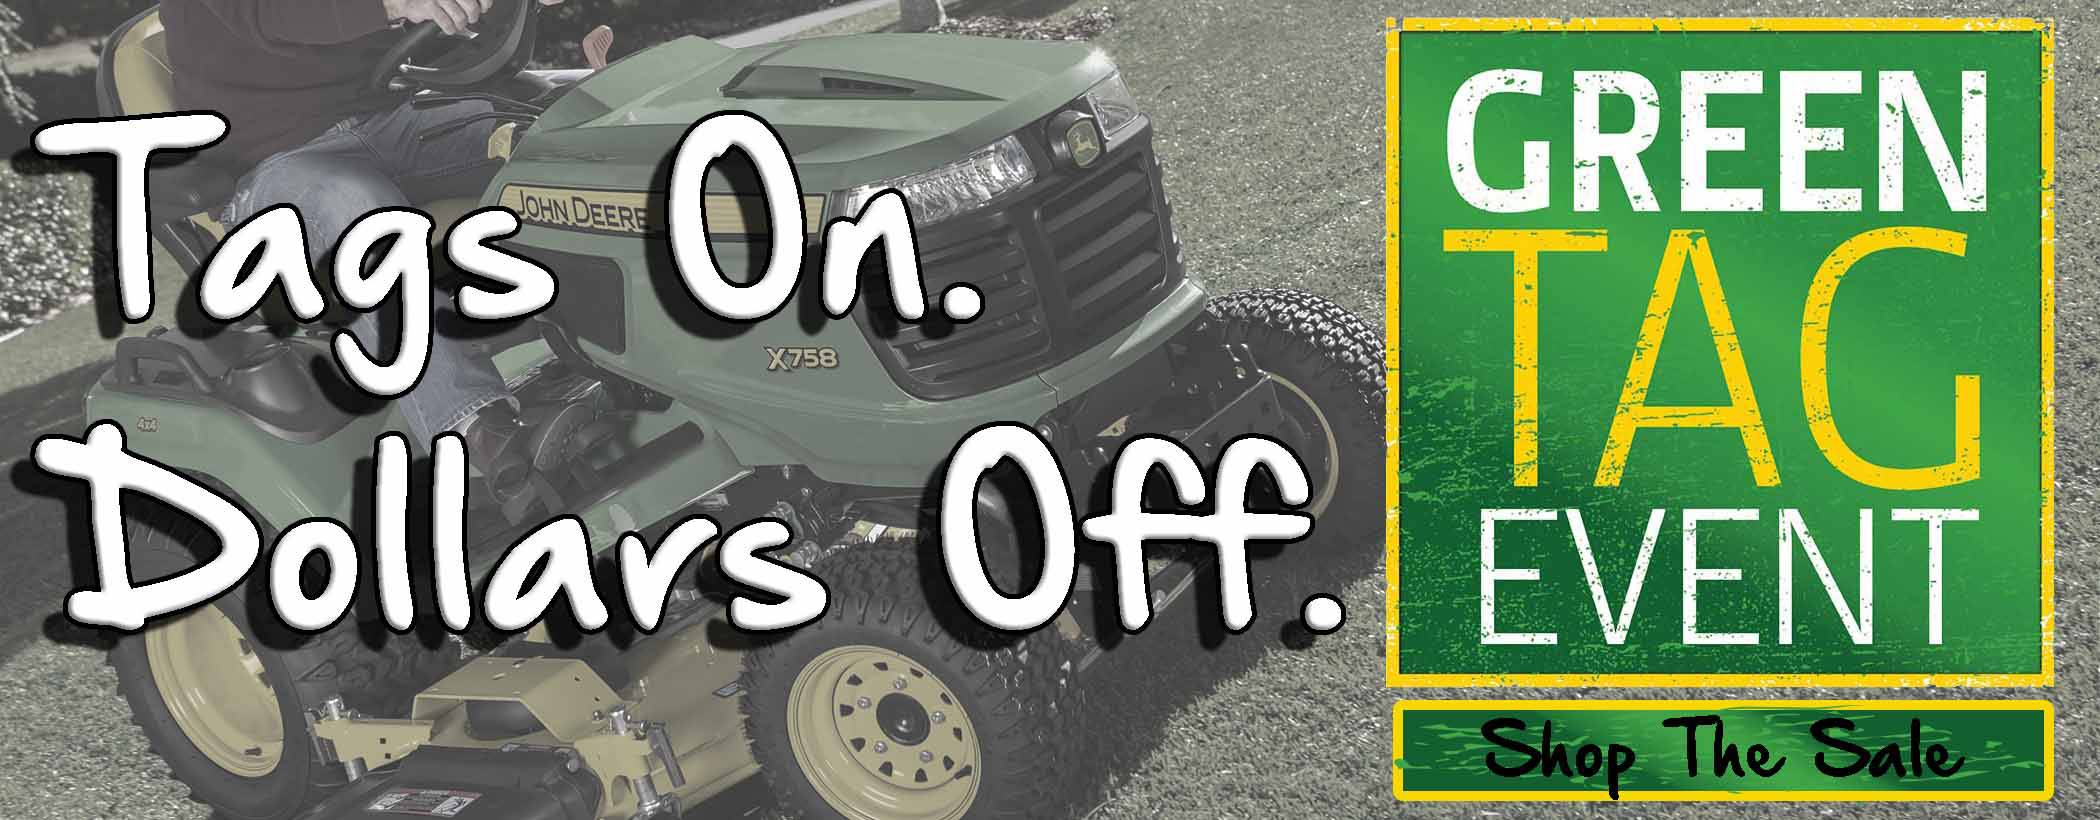 John Deere Green Tag Event Sale at Mutton Power Equipment